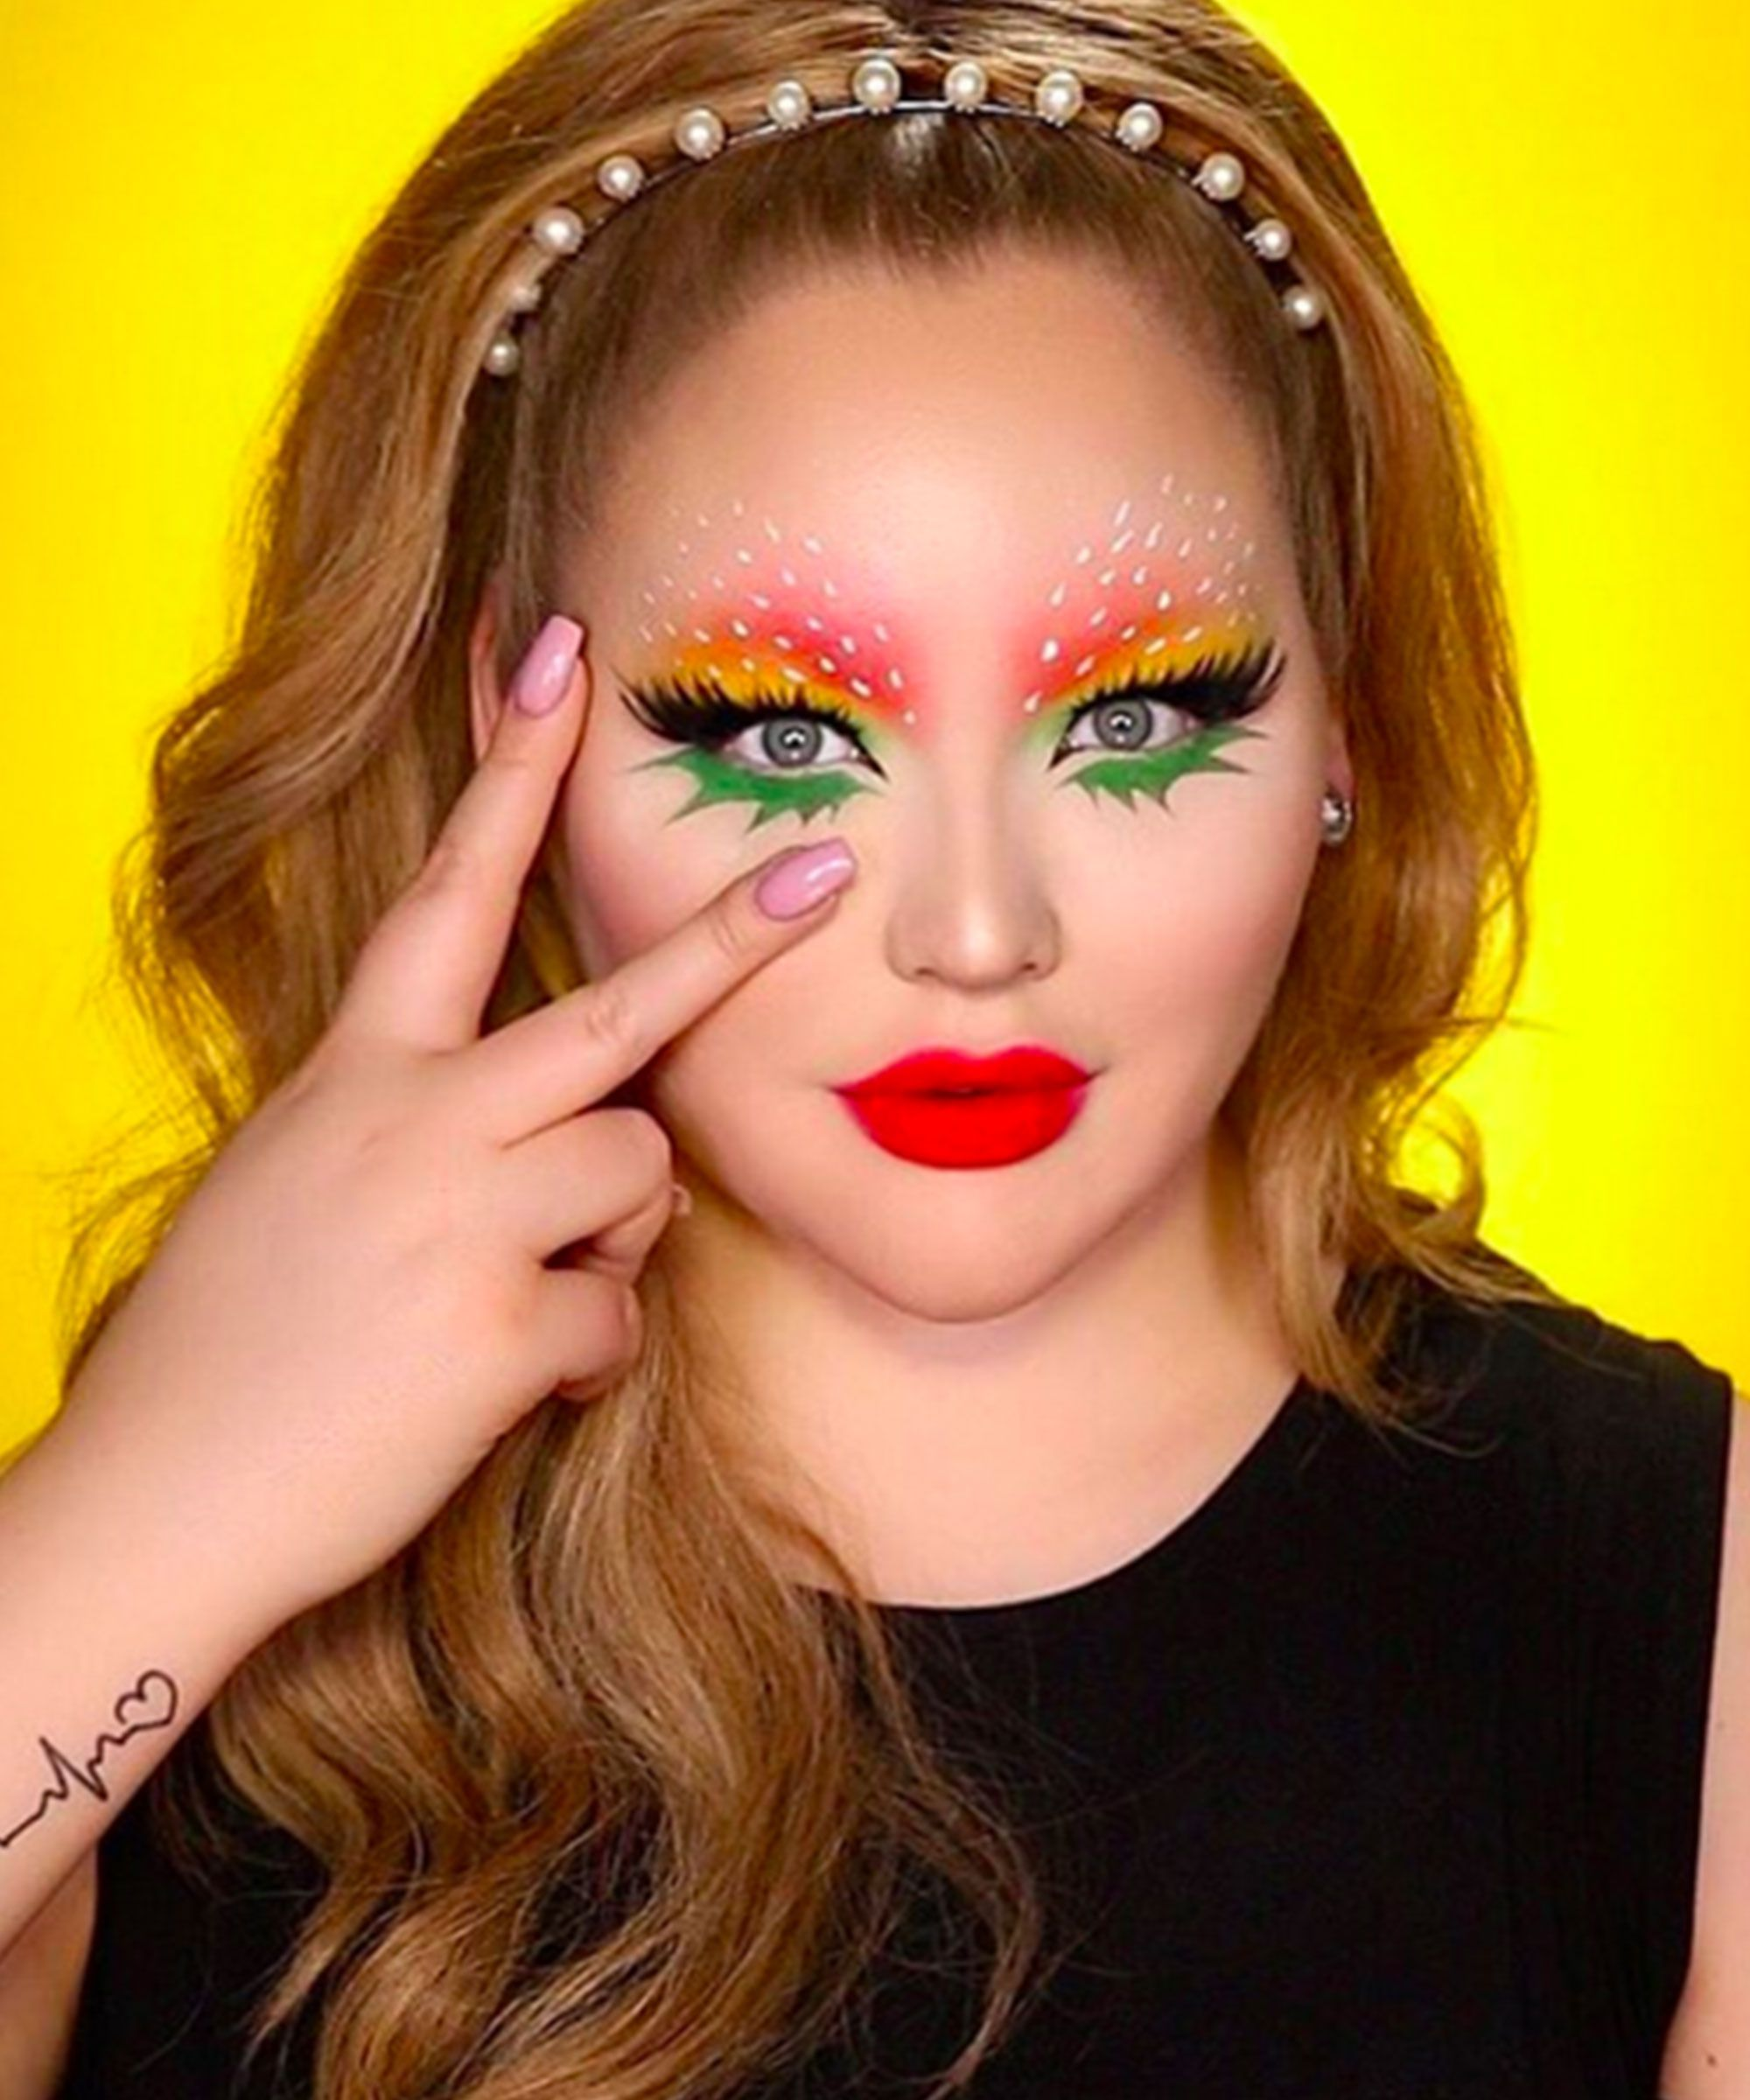 These SnapchatFilter Beauty Tutorials Will Blow Your Mind